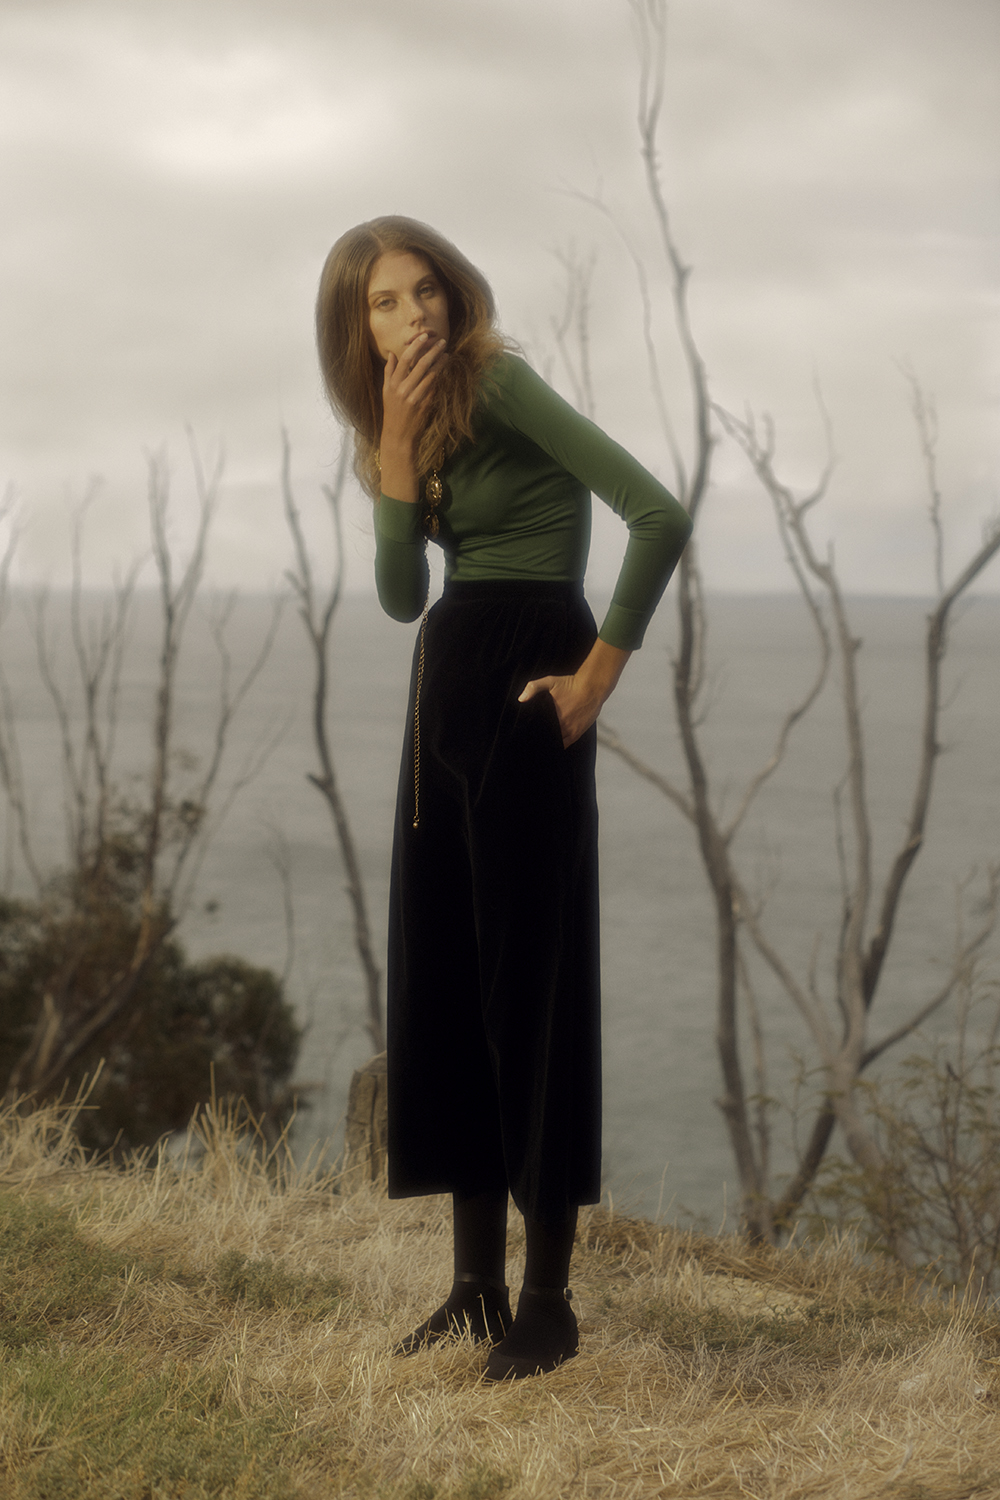 - Polo neck, American Apparel; skirt, Nelly De Grab; chain belt (worn as necklace), Gavonette; shoes, DKNY